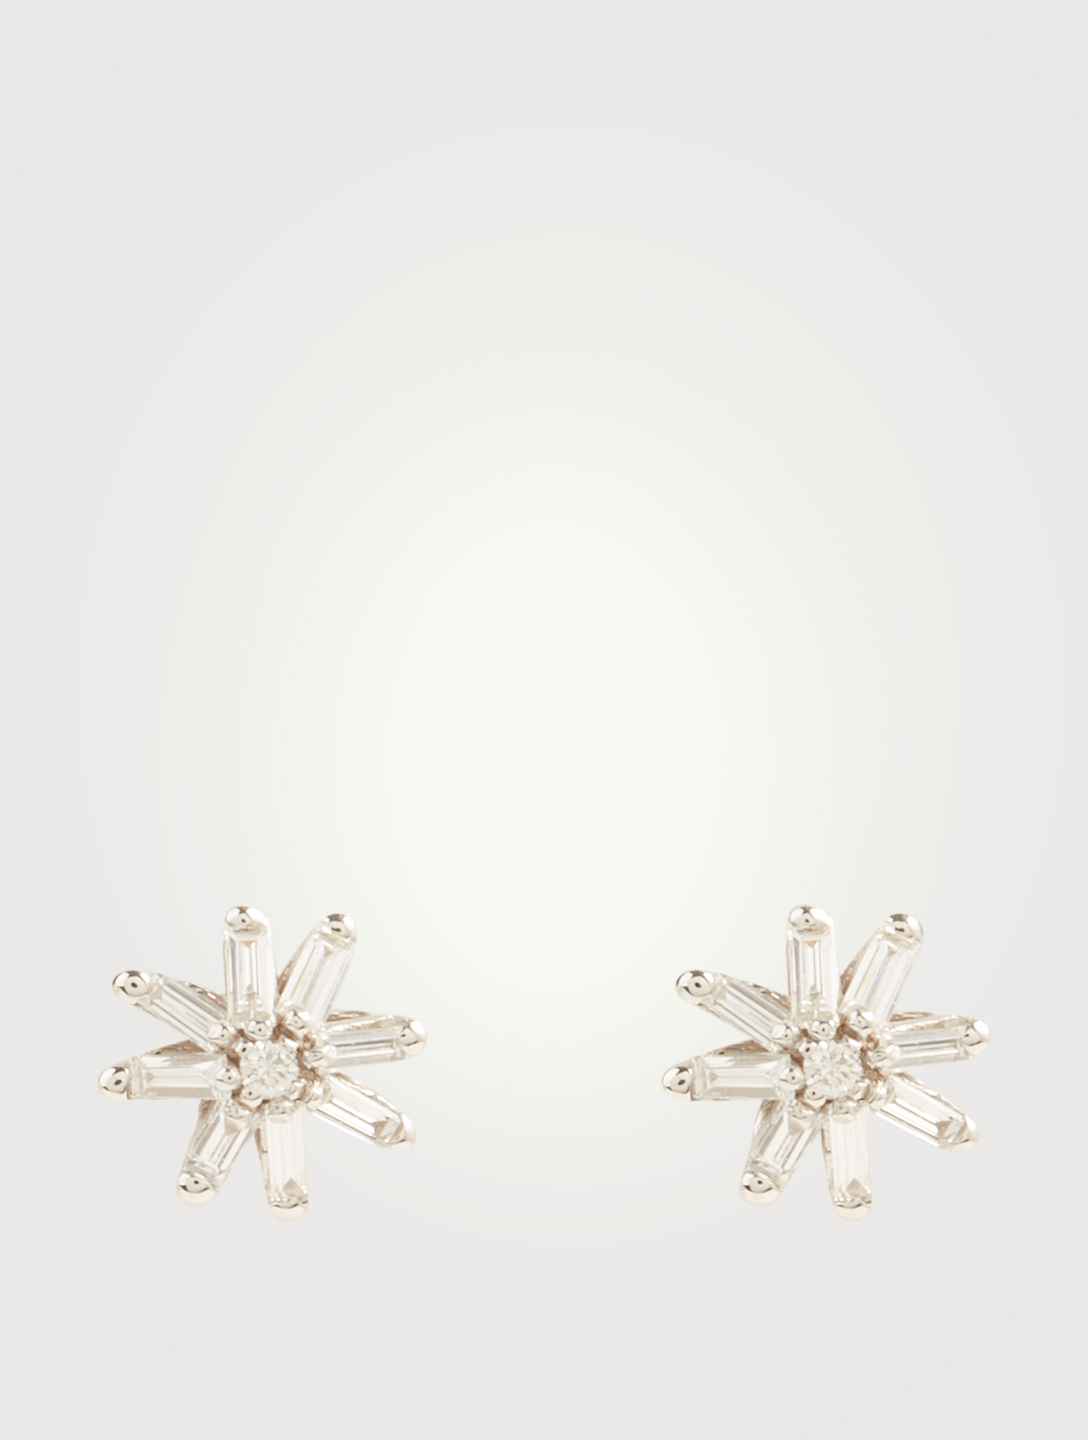 SUZANNE KALAN Small Fireworks 18K White Gold Starburst Stud Earrings With Diamonds Women's Metallic